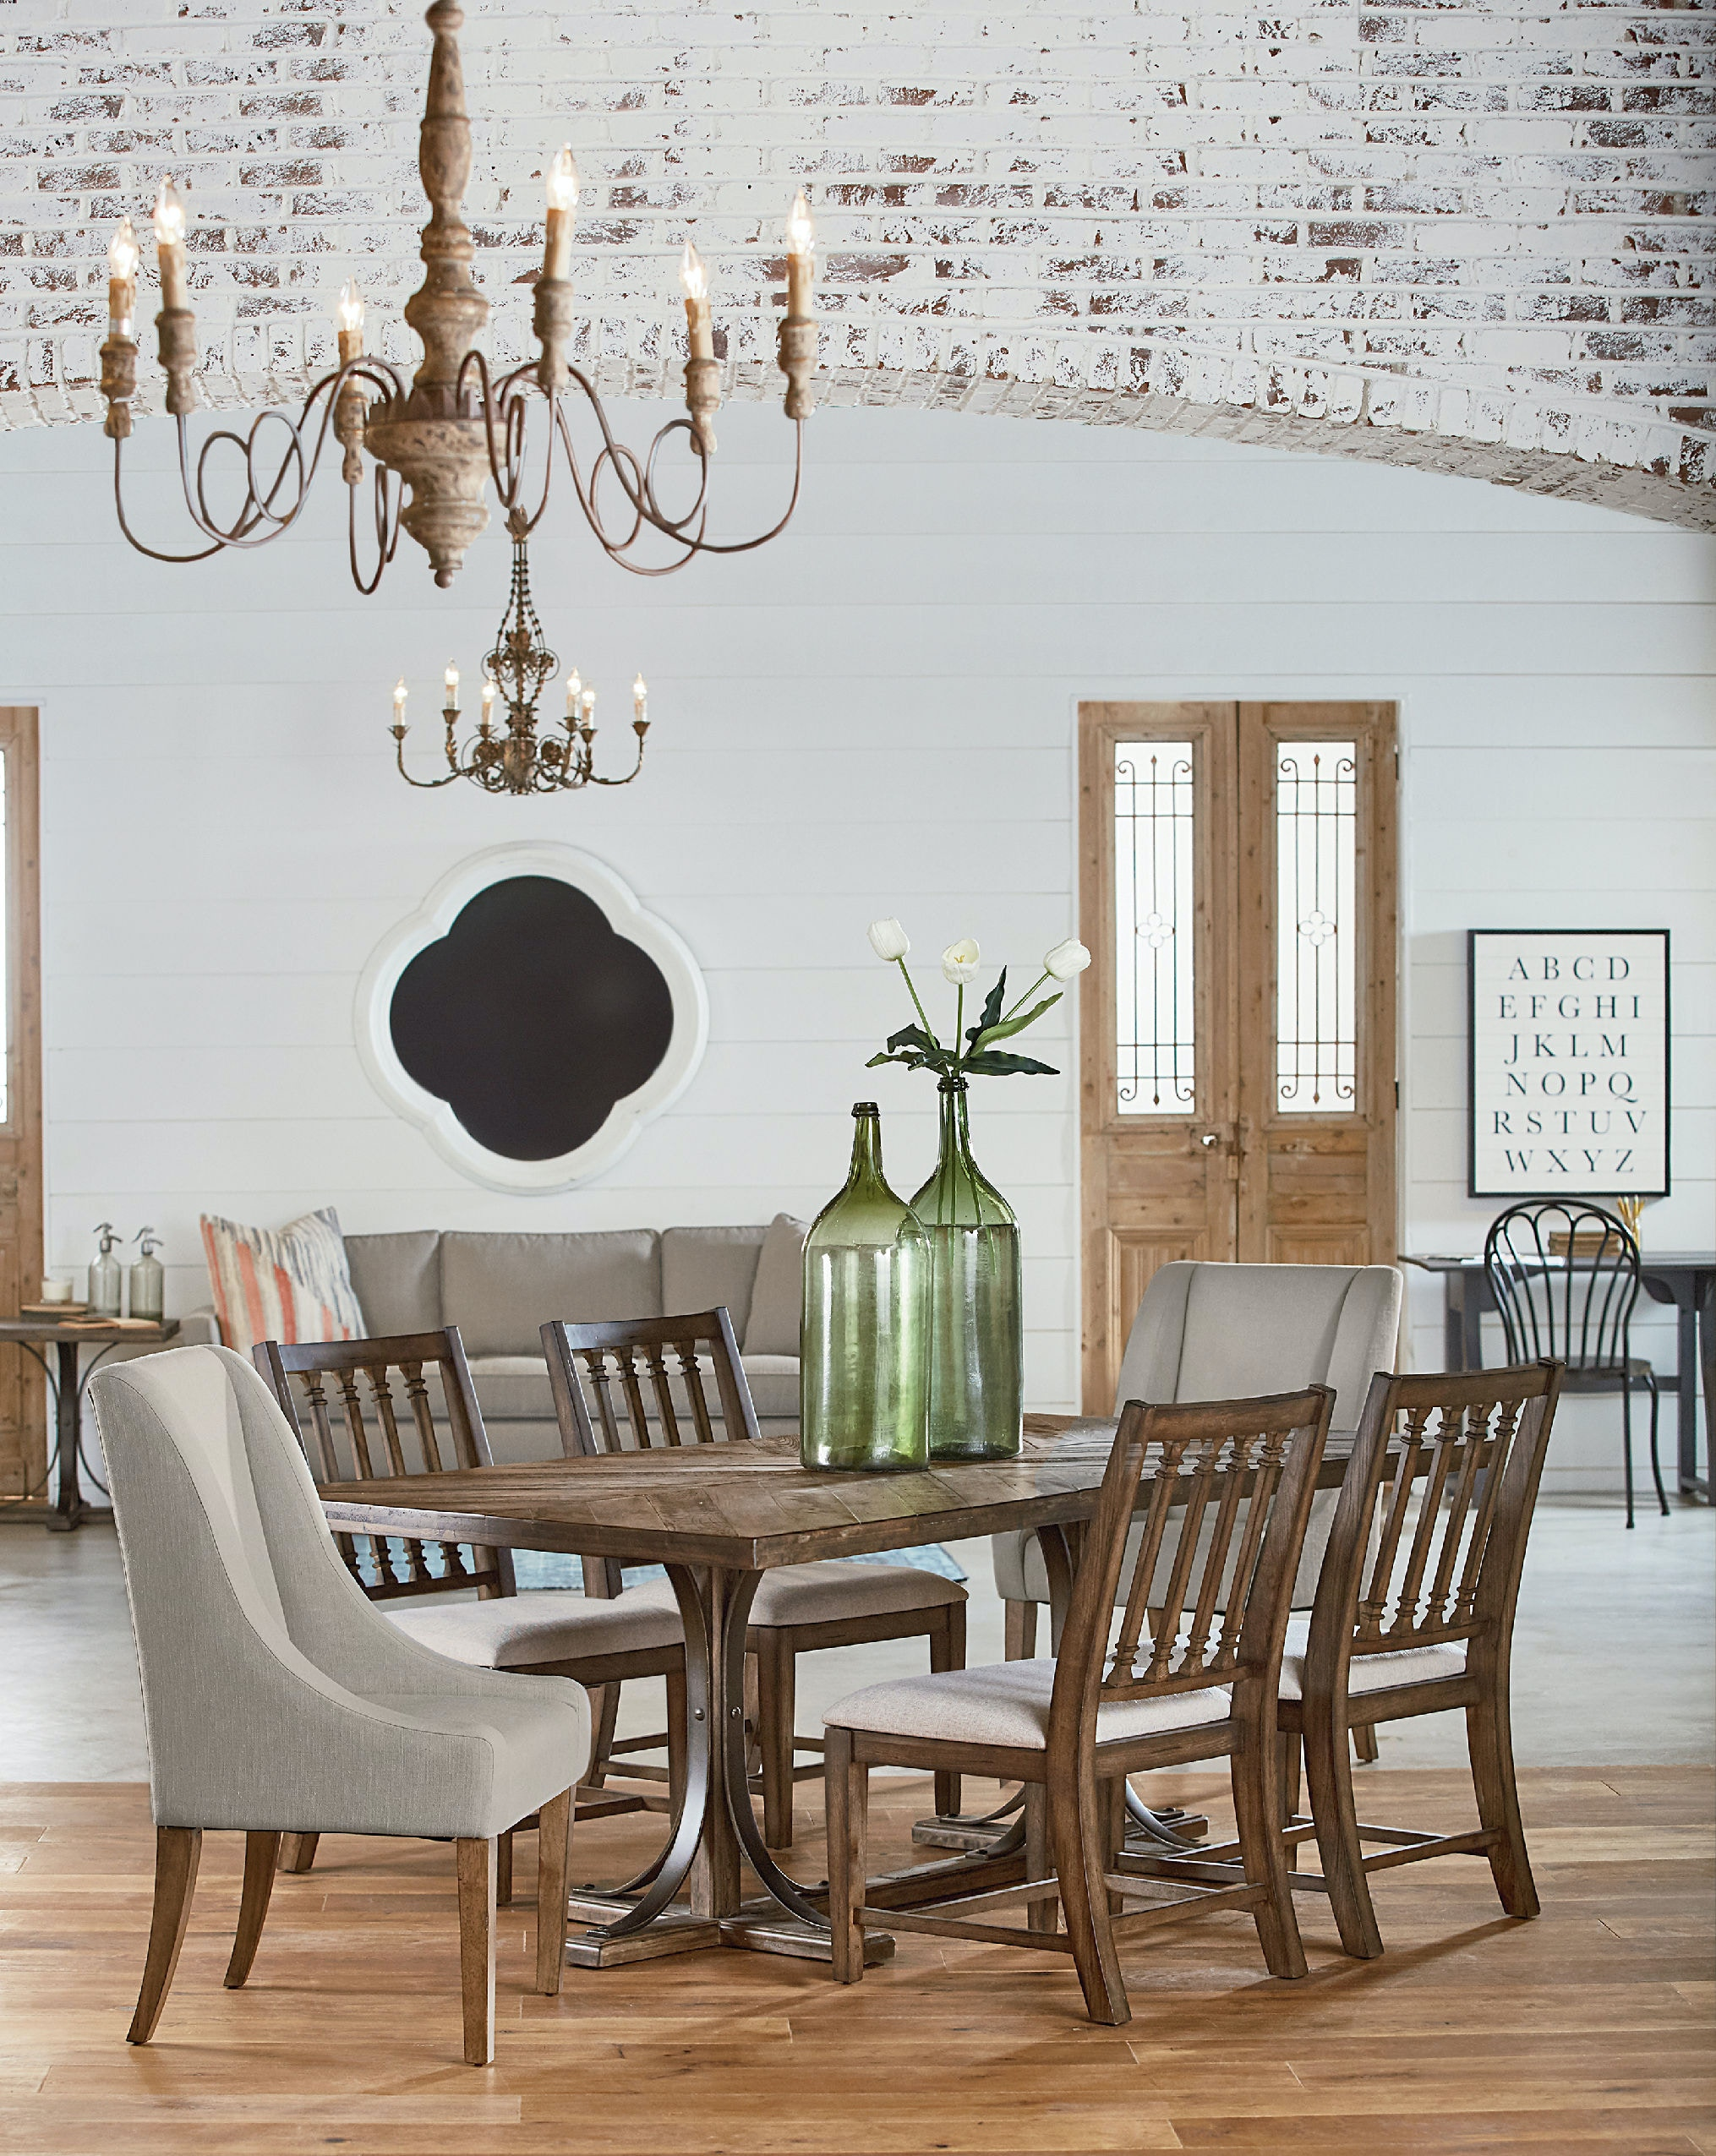 Dining Room Magnolia Home Iron Trestle Table For Joanna Gaines Ideas